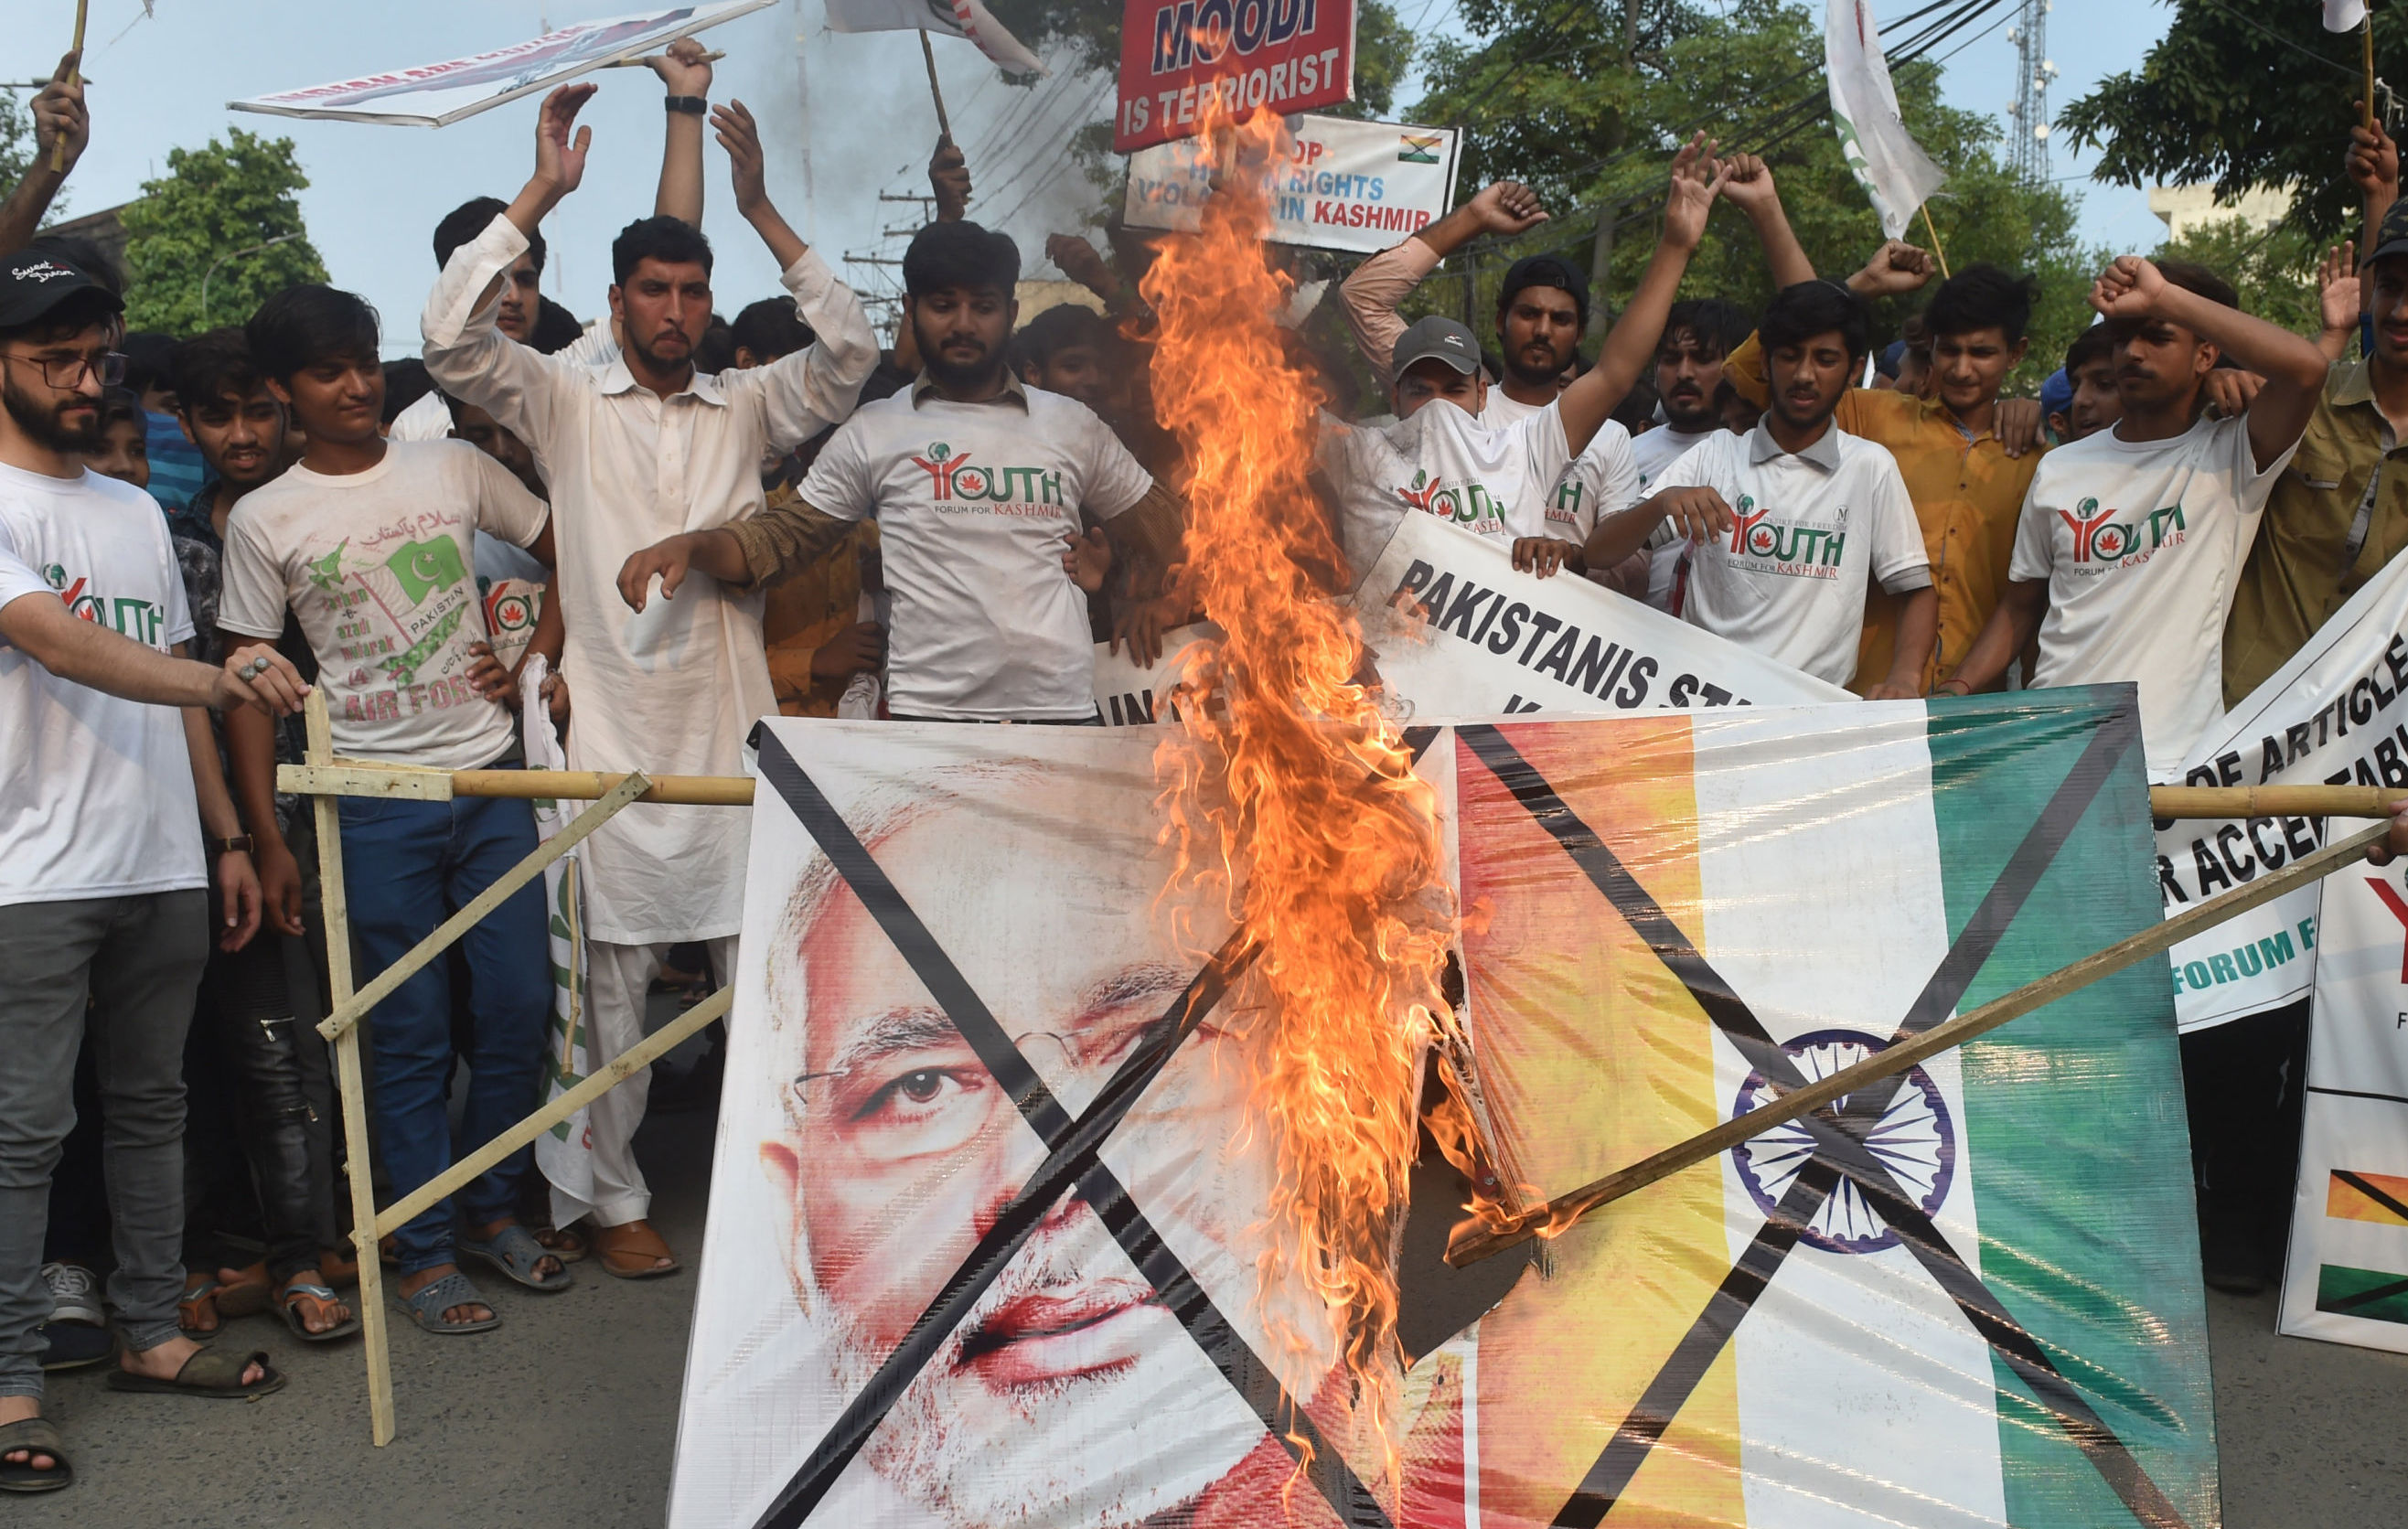 Pakistani activists of the Youth Forum for Kashmir group shout slogans as a a picture of Indian Prime Minister Narendra Modi and Indian flag is burned during a protest in Lahore on August 5, 2019, in reaction to the move by India to abolish Kashmir's special status